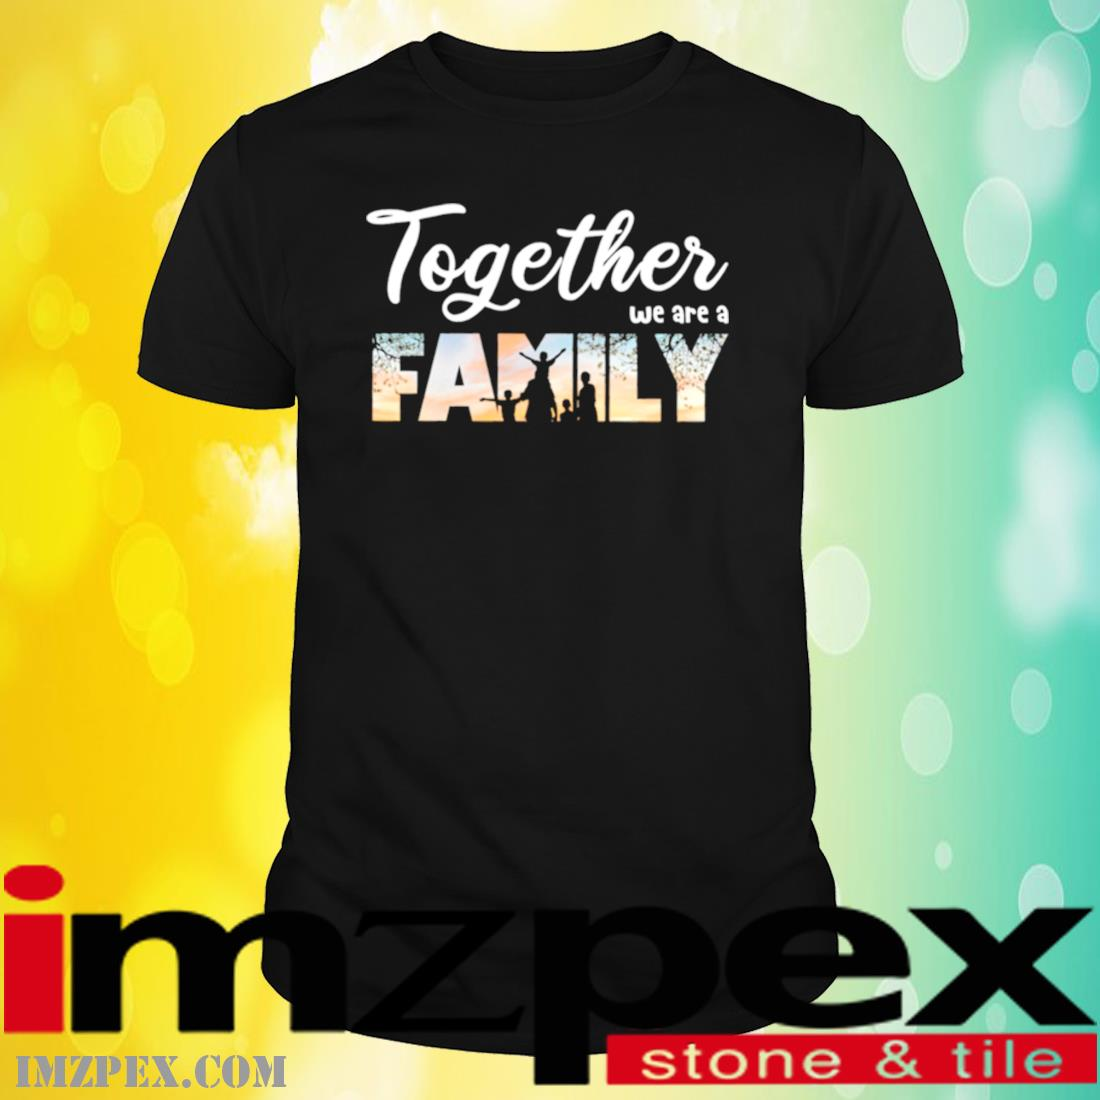 Together We Are A Family Shirt